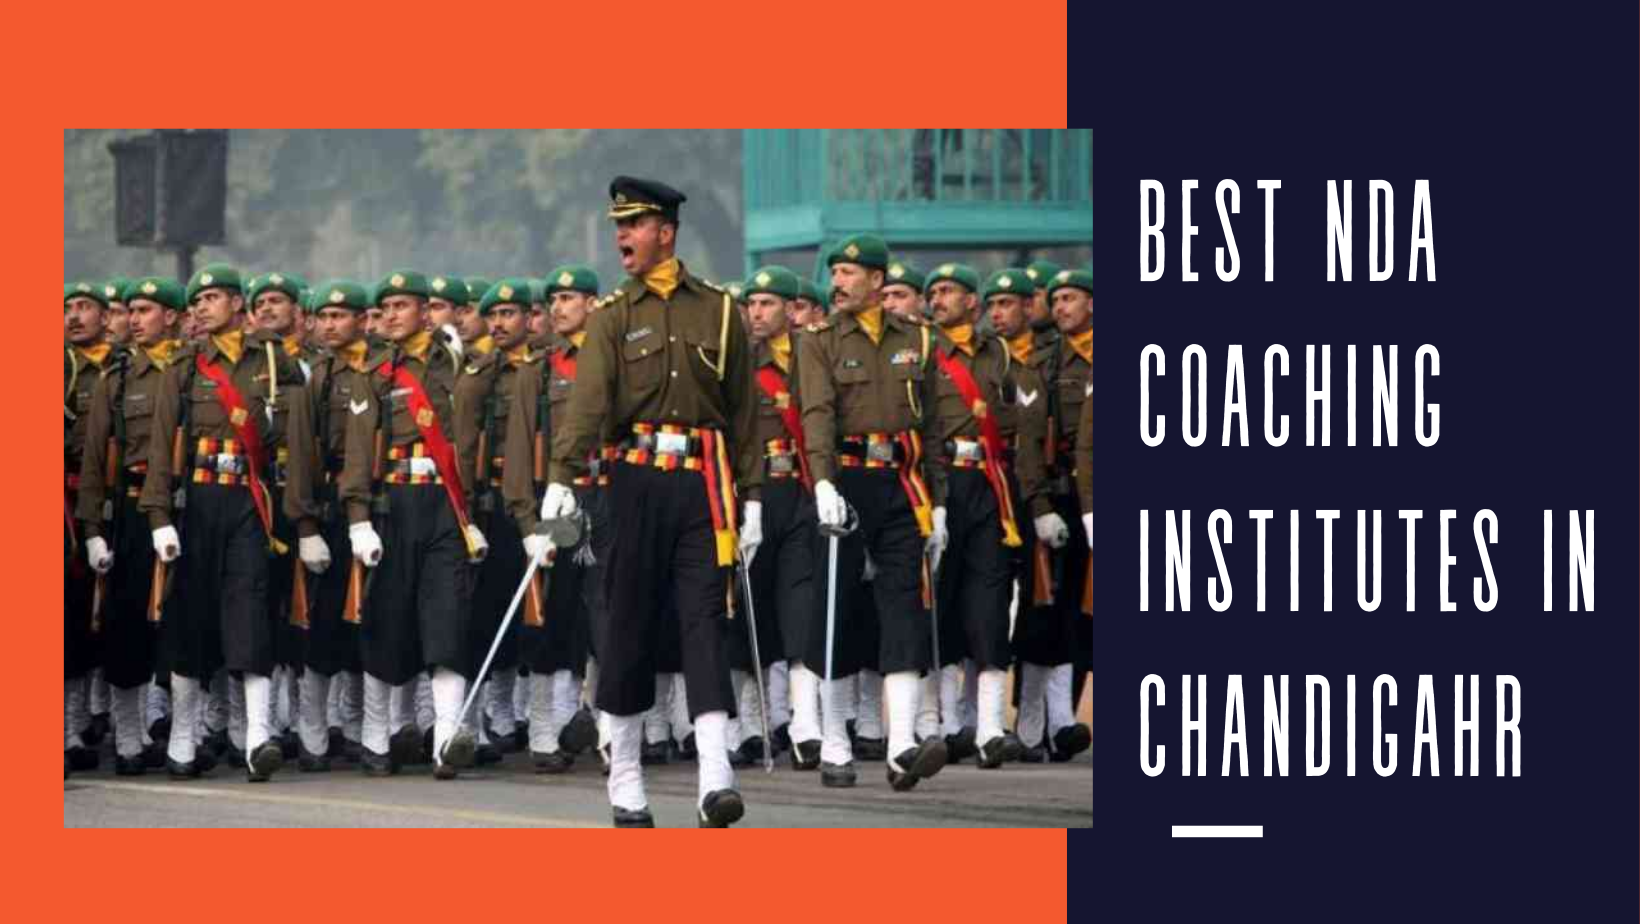 11 Best NDA Coaching Institutes in Chandigarh with Fee, Images, Contact and Batch Details